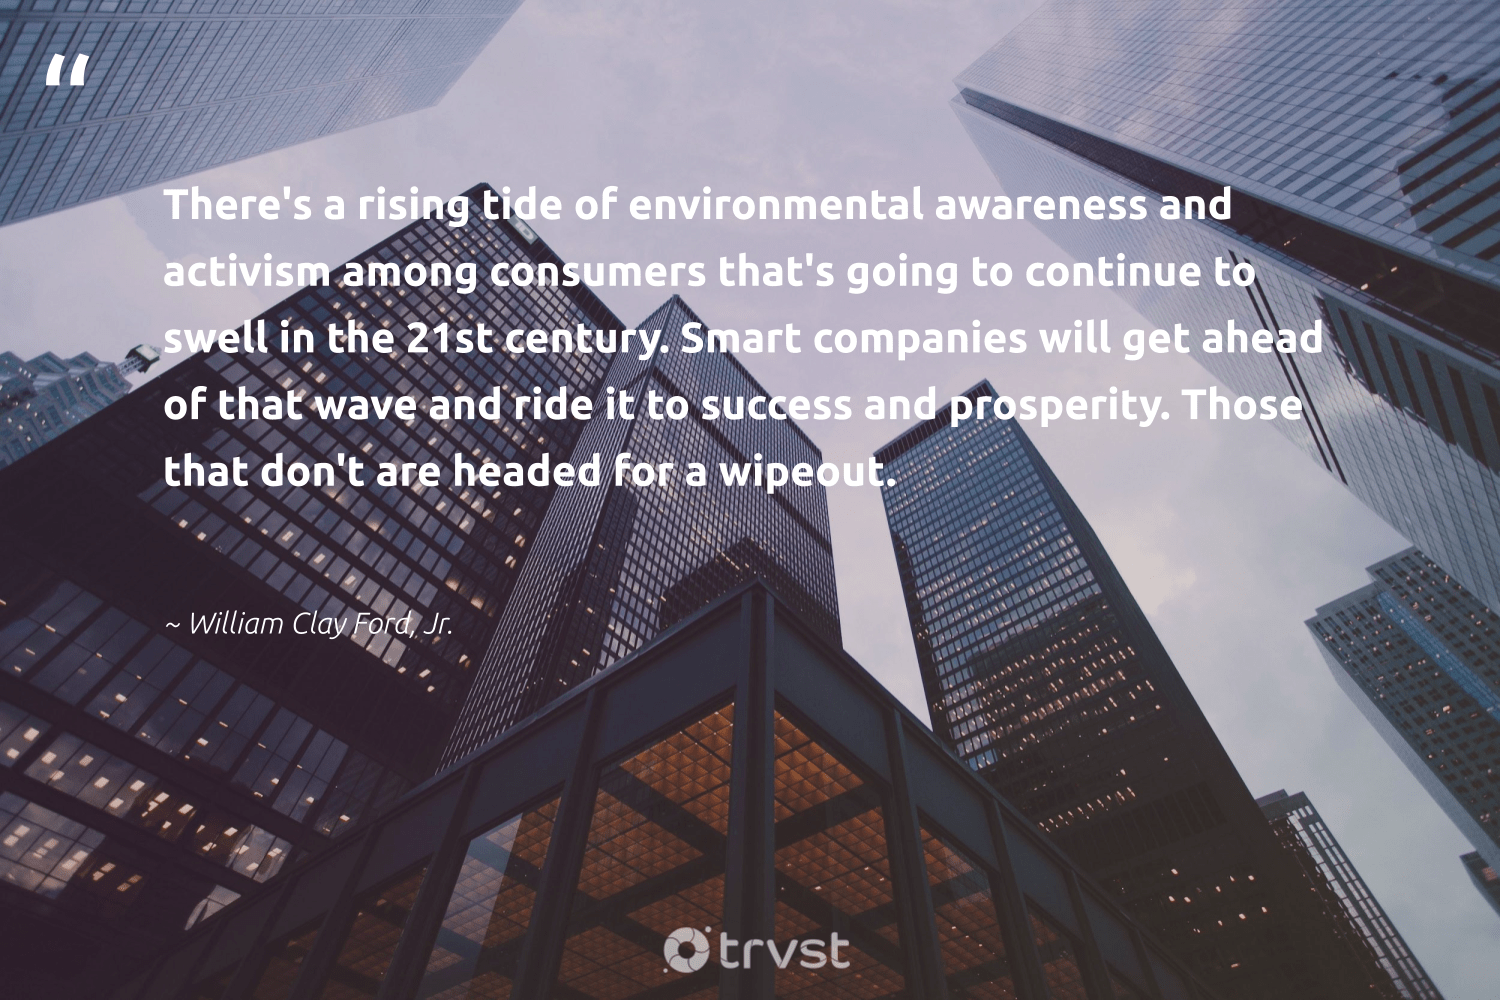 """""""There's a rising tide of environmental awareness and activism among consumers that's going to continue to swell in the 21st century. Smart companies will get ahead of that wave and ride it to success and prosperity. Those that don't are headed for a wipeout.""""  - William Clay Ford, Jr. #trvst #quotes #environmental #success #activism #focus #sustainable #nevergiveup #ecoconscious #goals #betterplanet #begreat"""